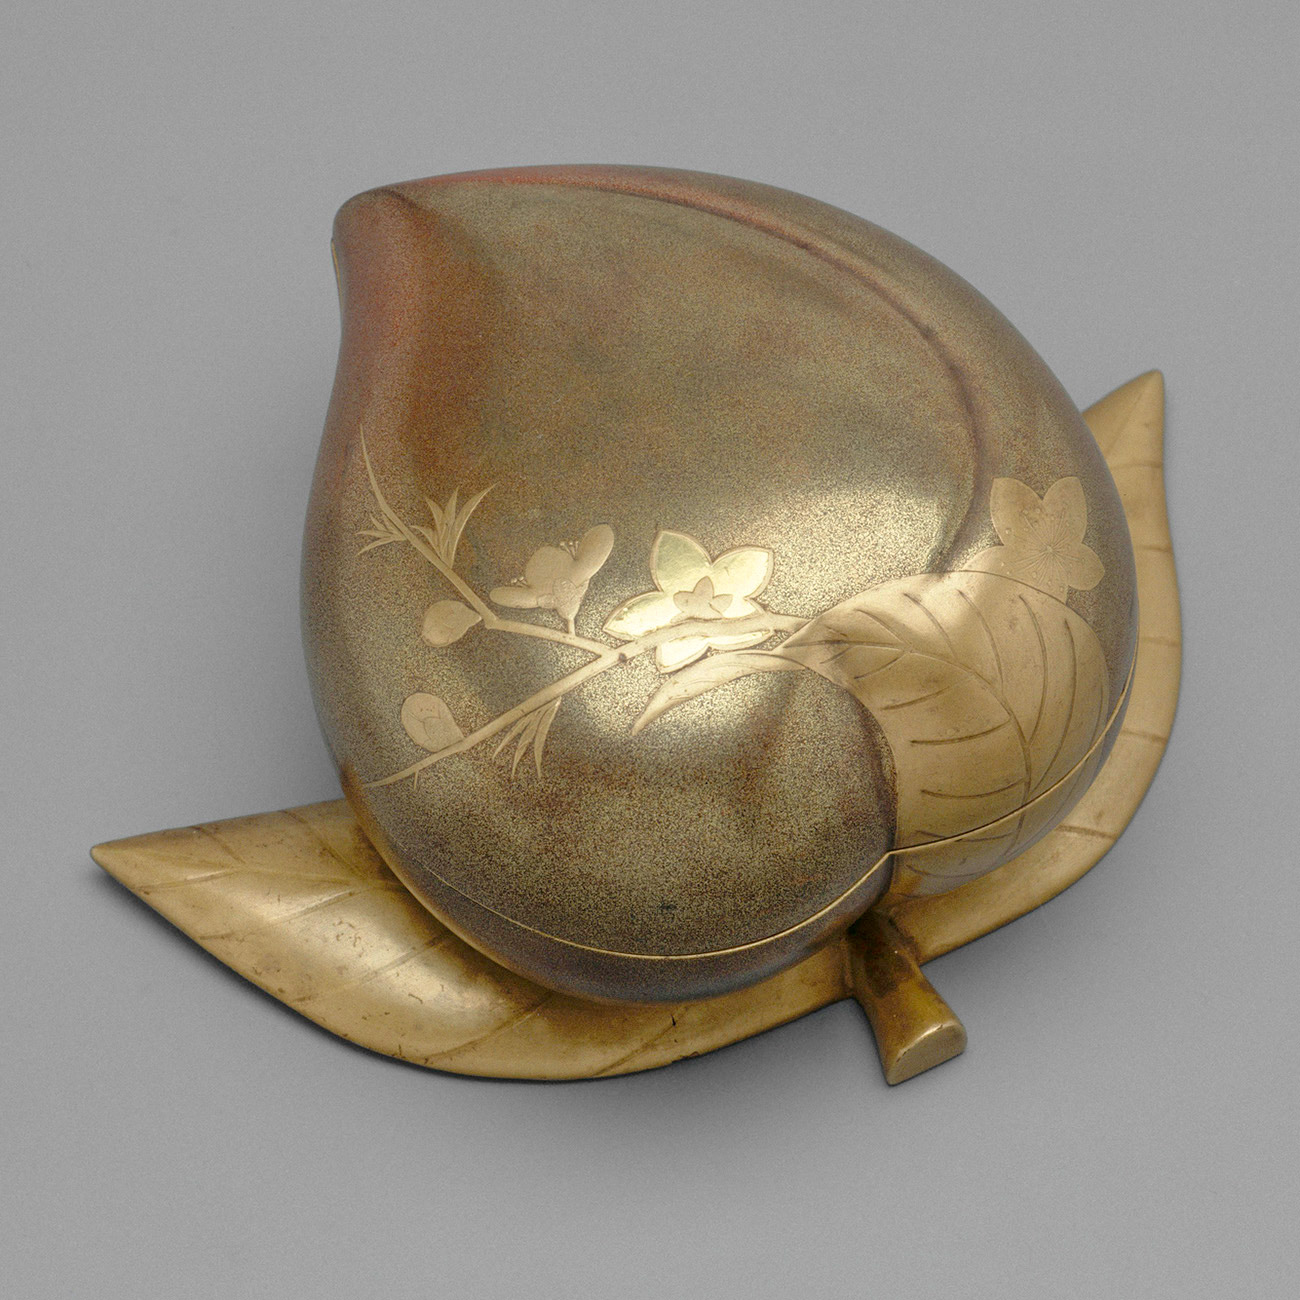 Another view of the top of the peach-shaped box showing two leaves spreading outward as a base and one more in relief on the top.